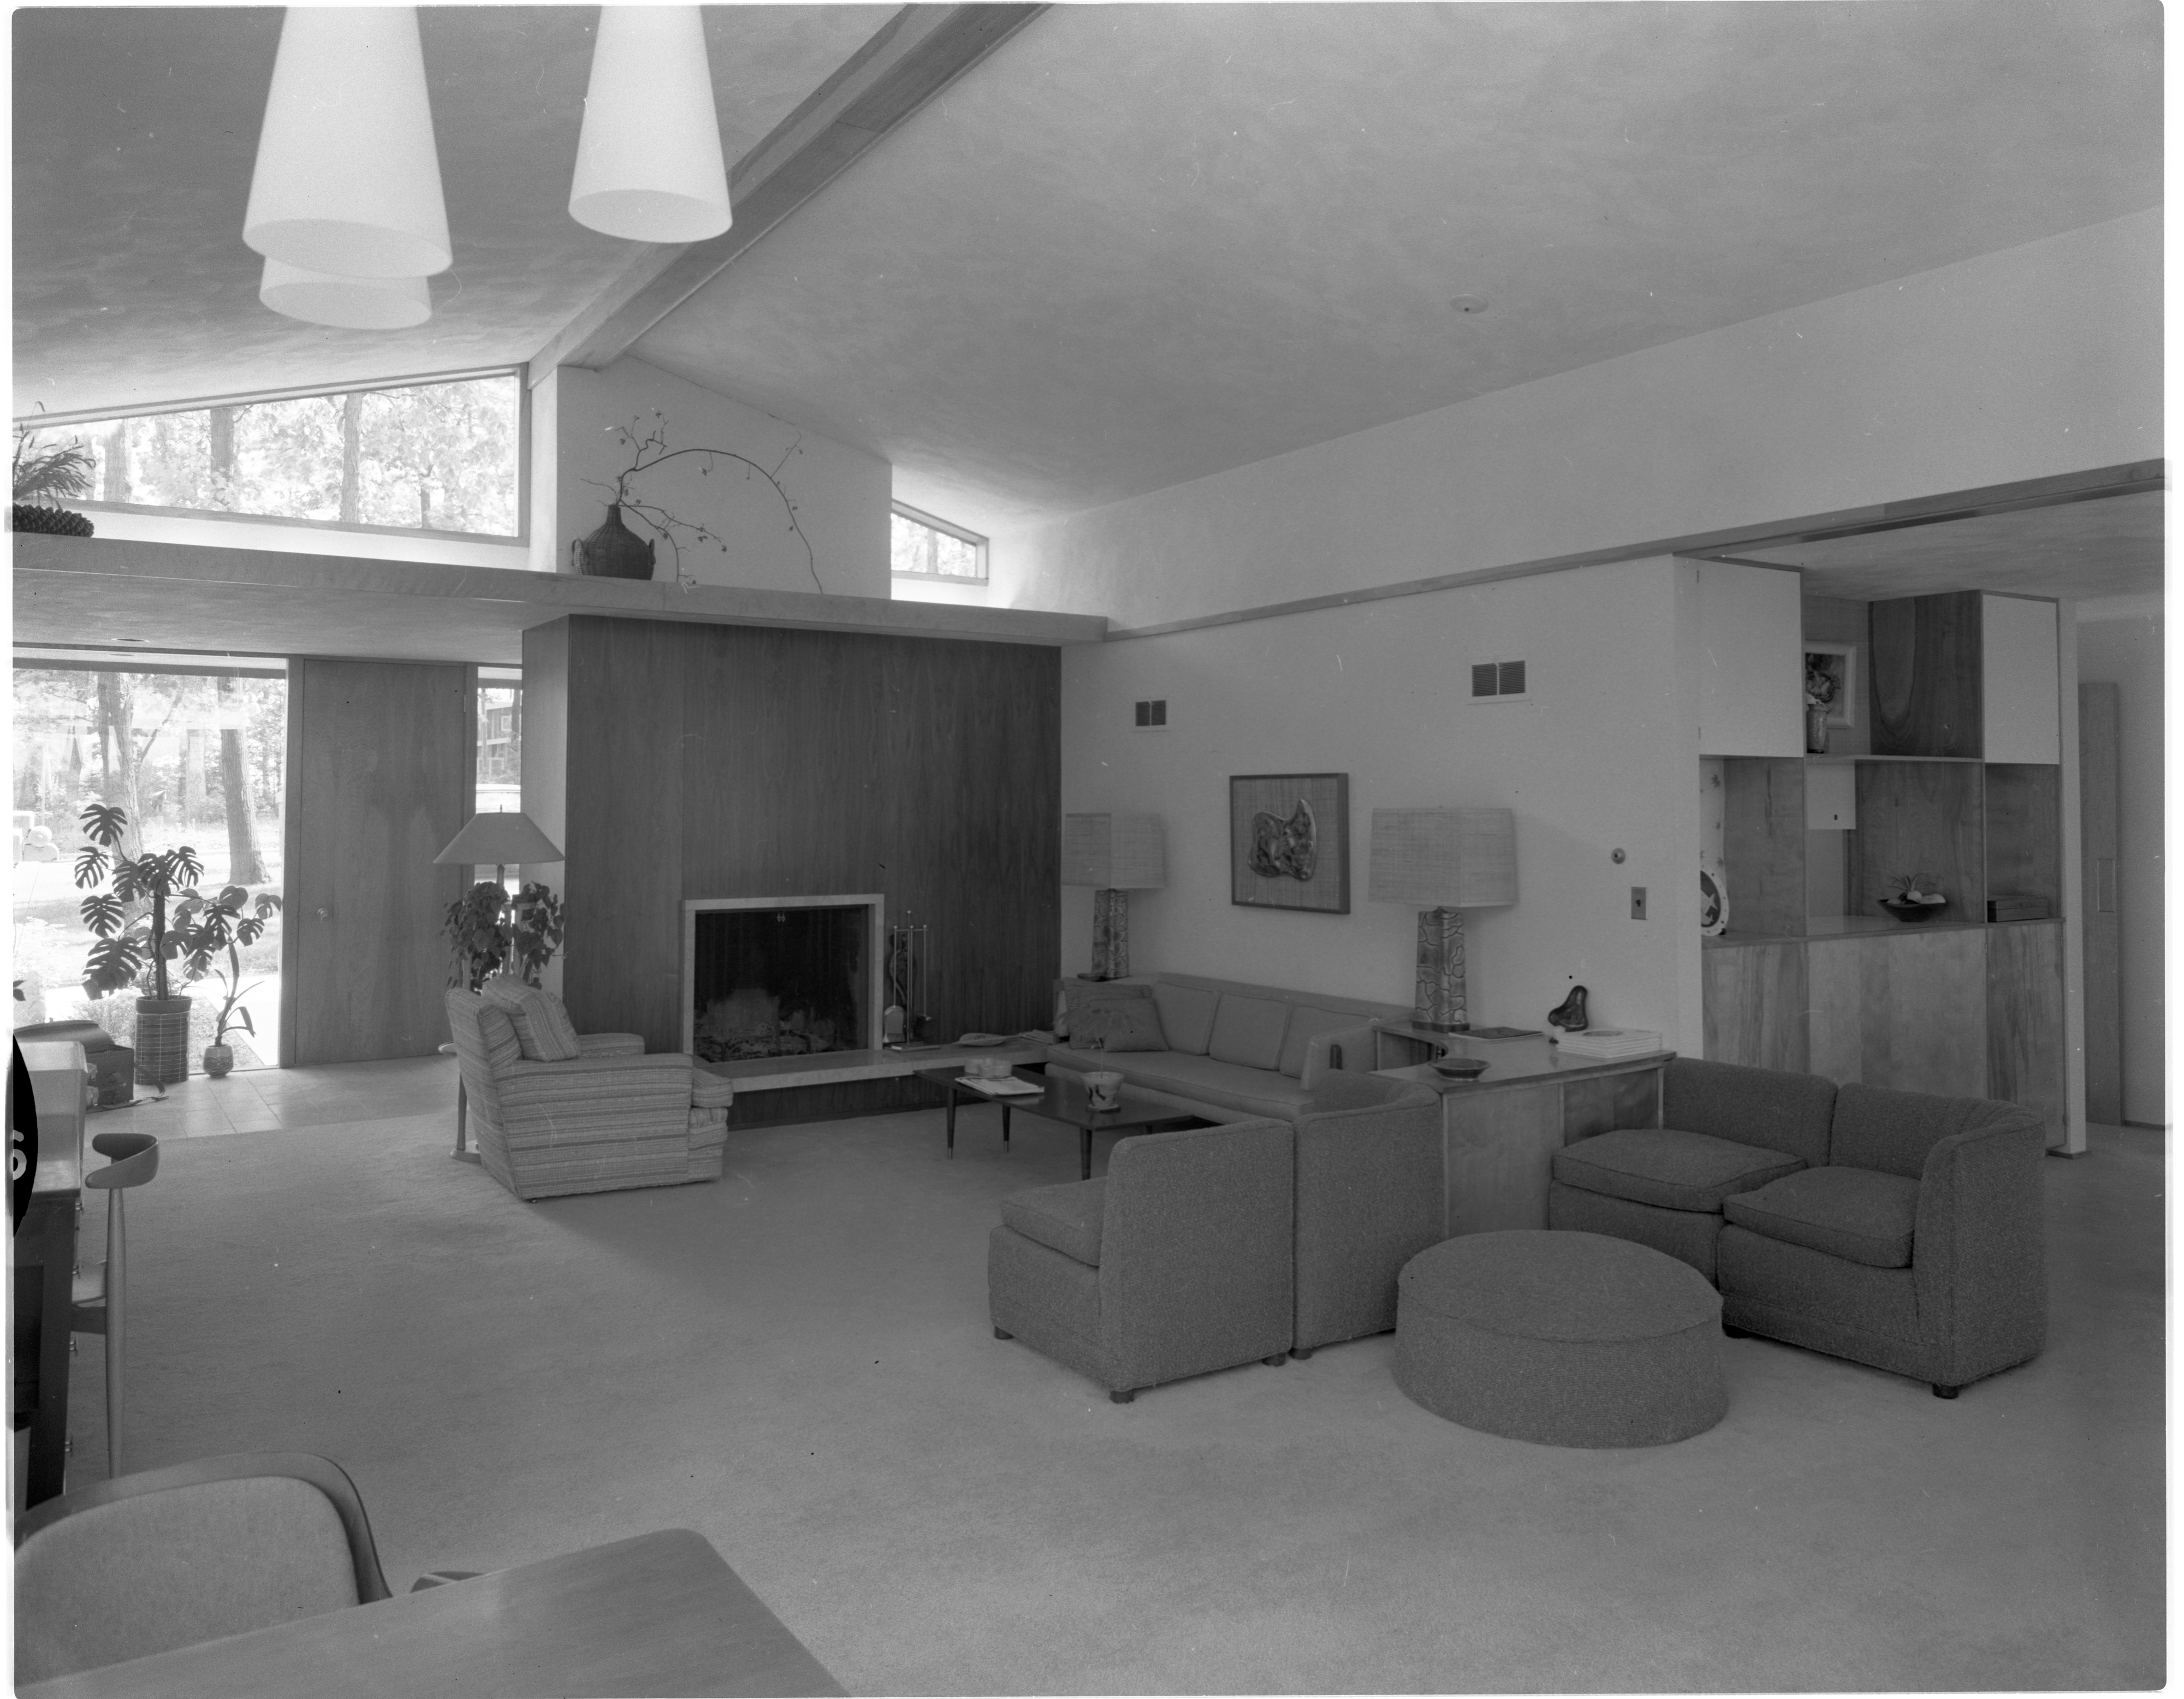 Light Shelf Design Incorporated Into Living Room of Moore Home, June 1958 image